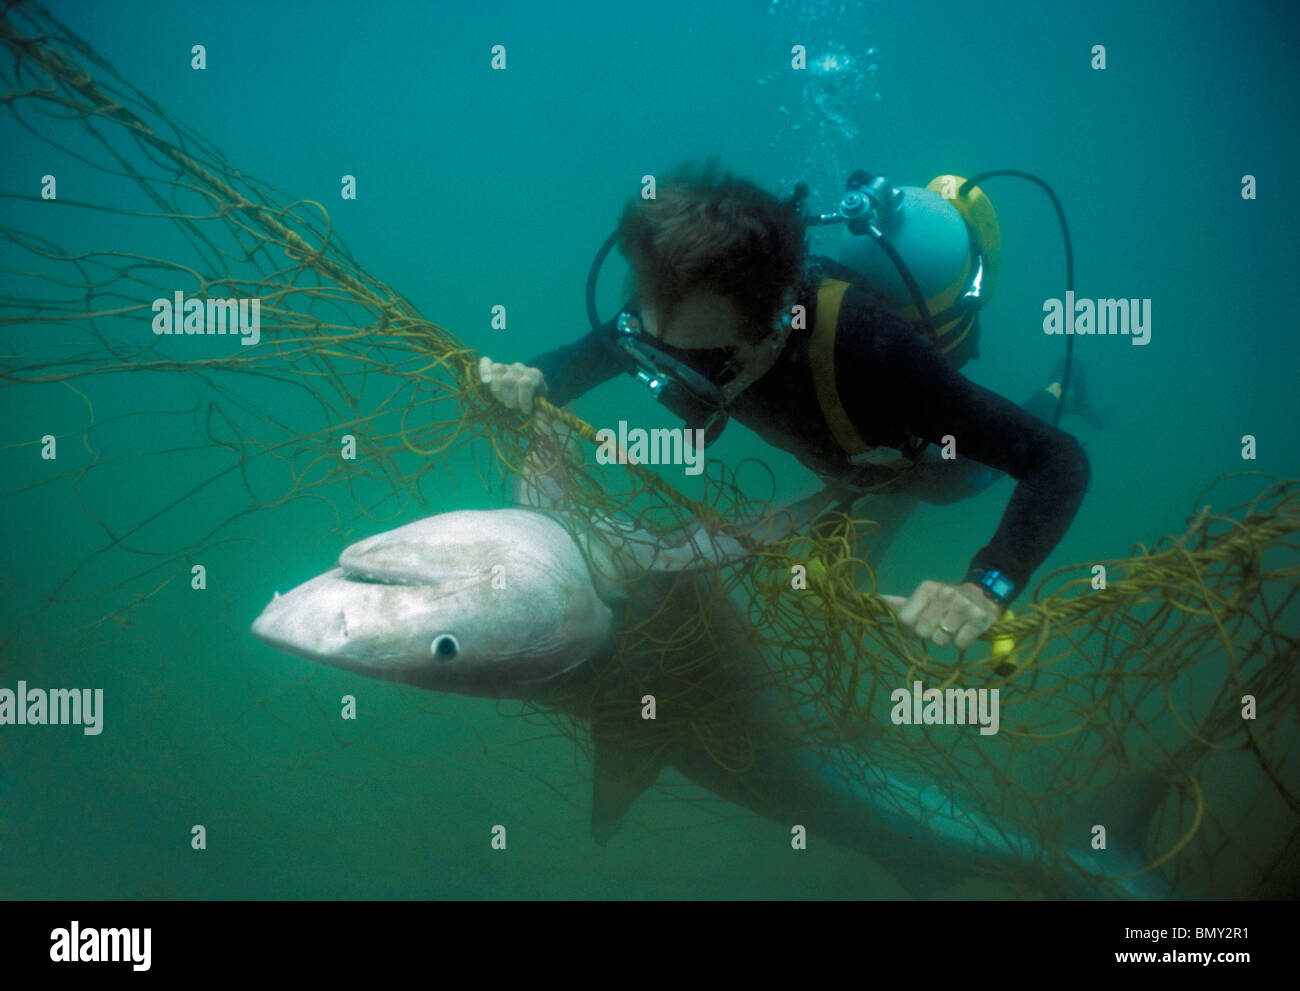 Close-up of Diver with anti-shark POD examines Tiger Shark (Galeocerdo cuvier) caught in anti-shark net. South Africa. - Stock Image